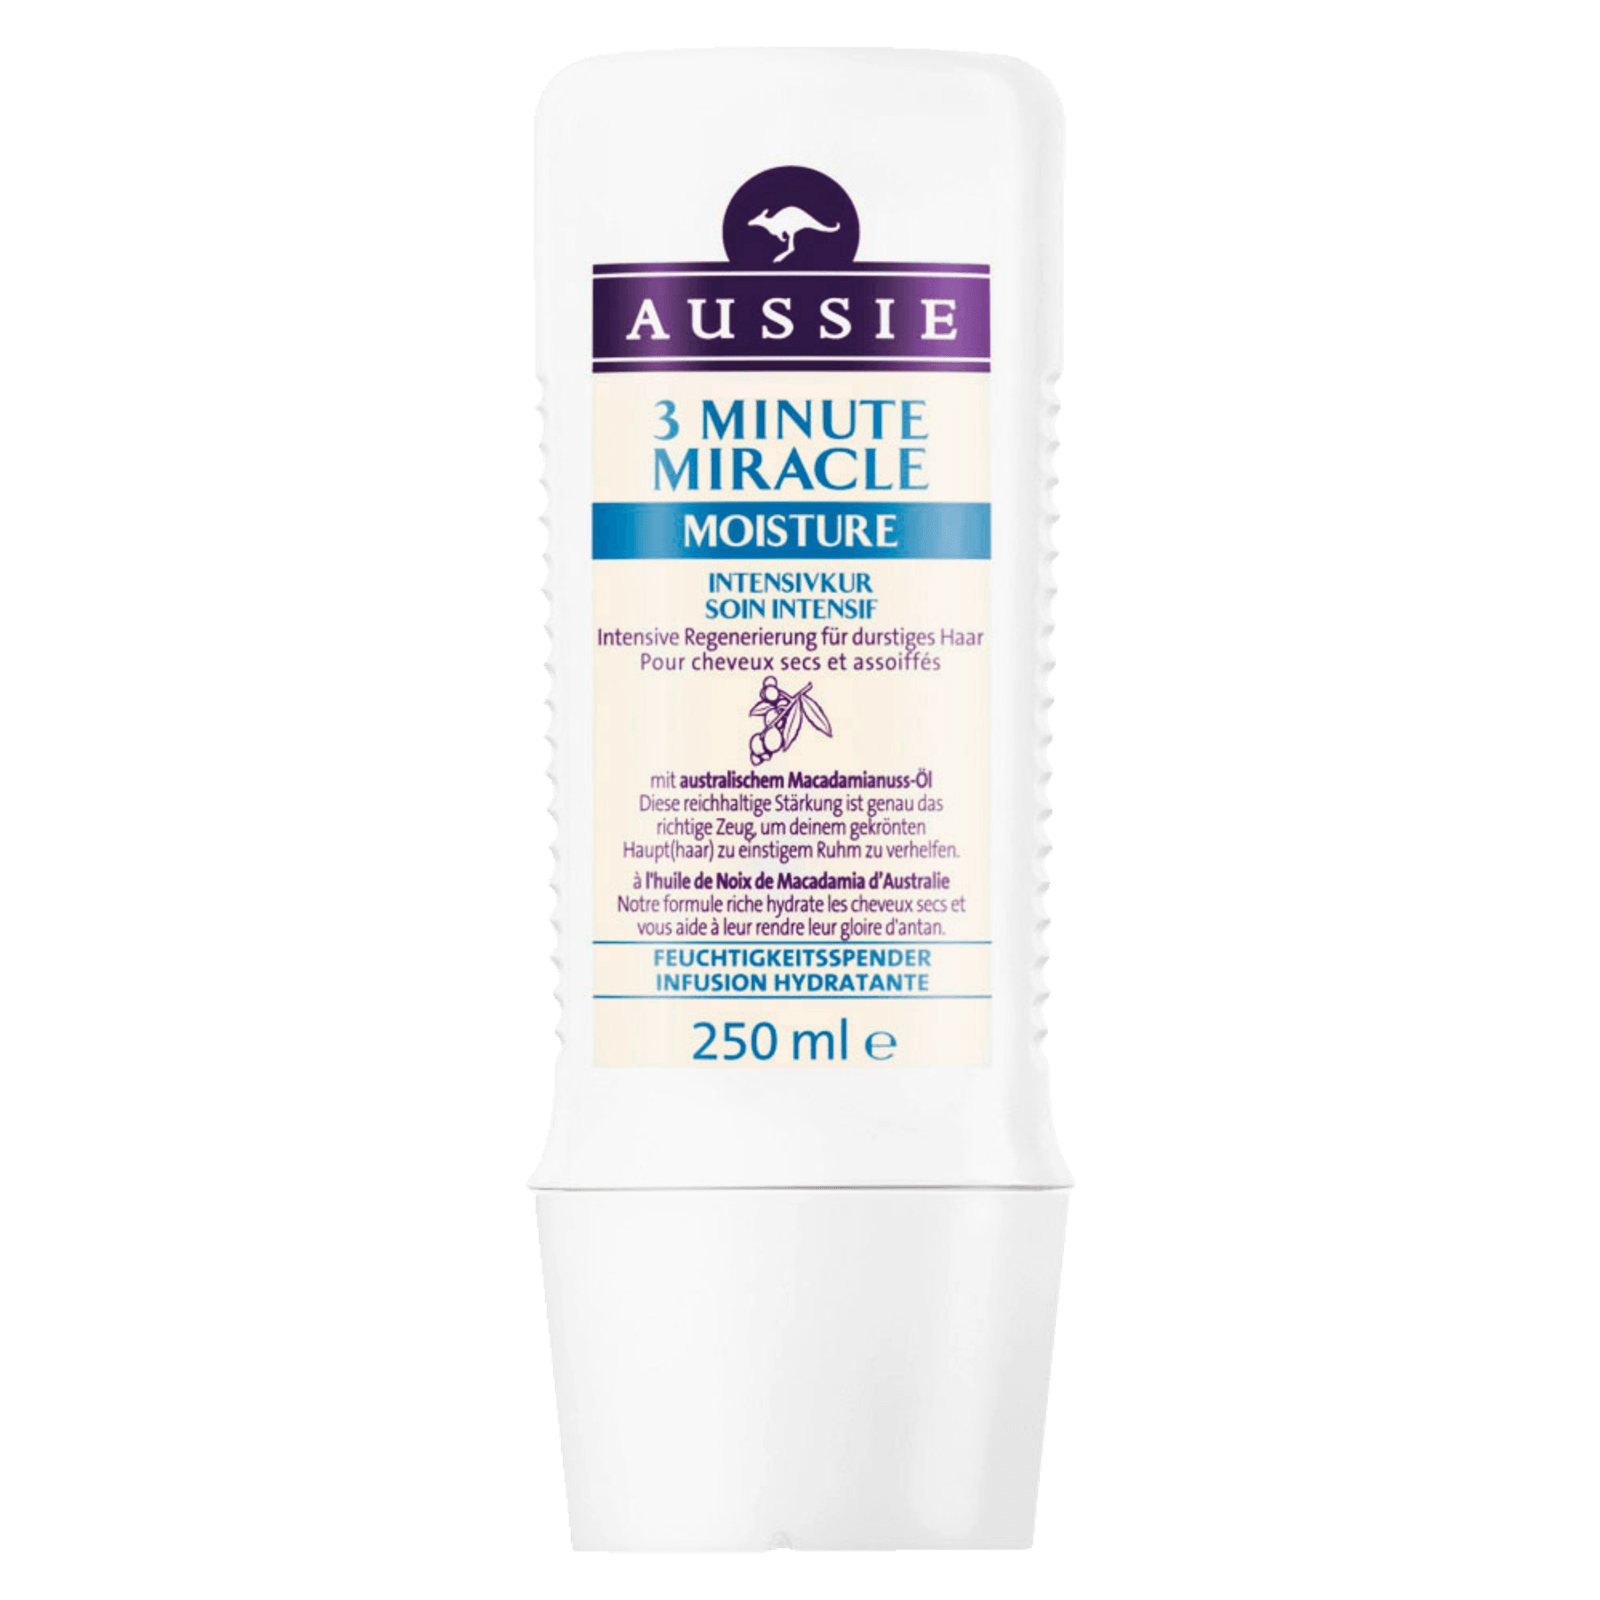 Aussie 3 Minute Miracle Moisture Intensivkur 250ml